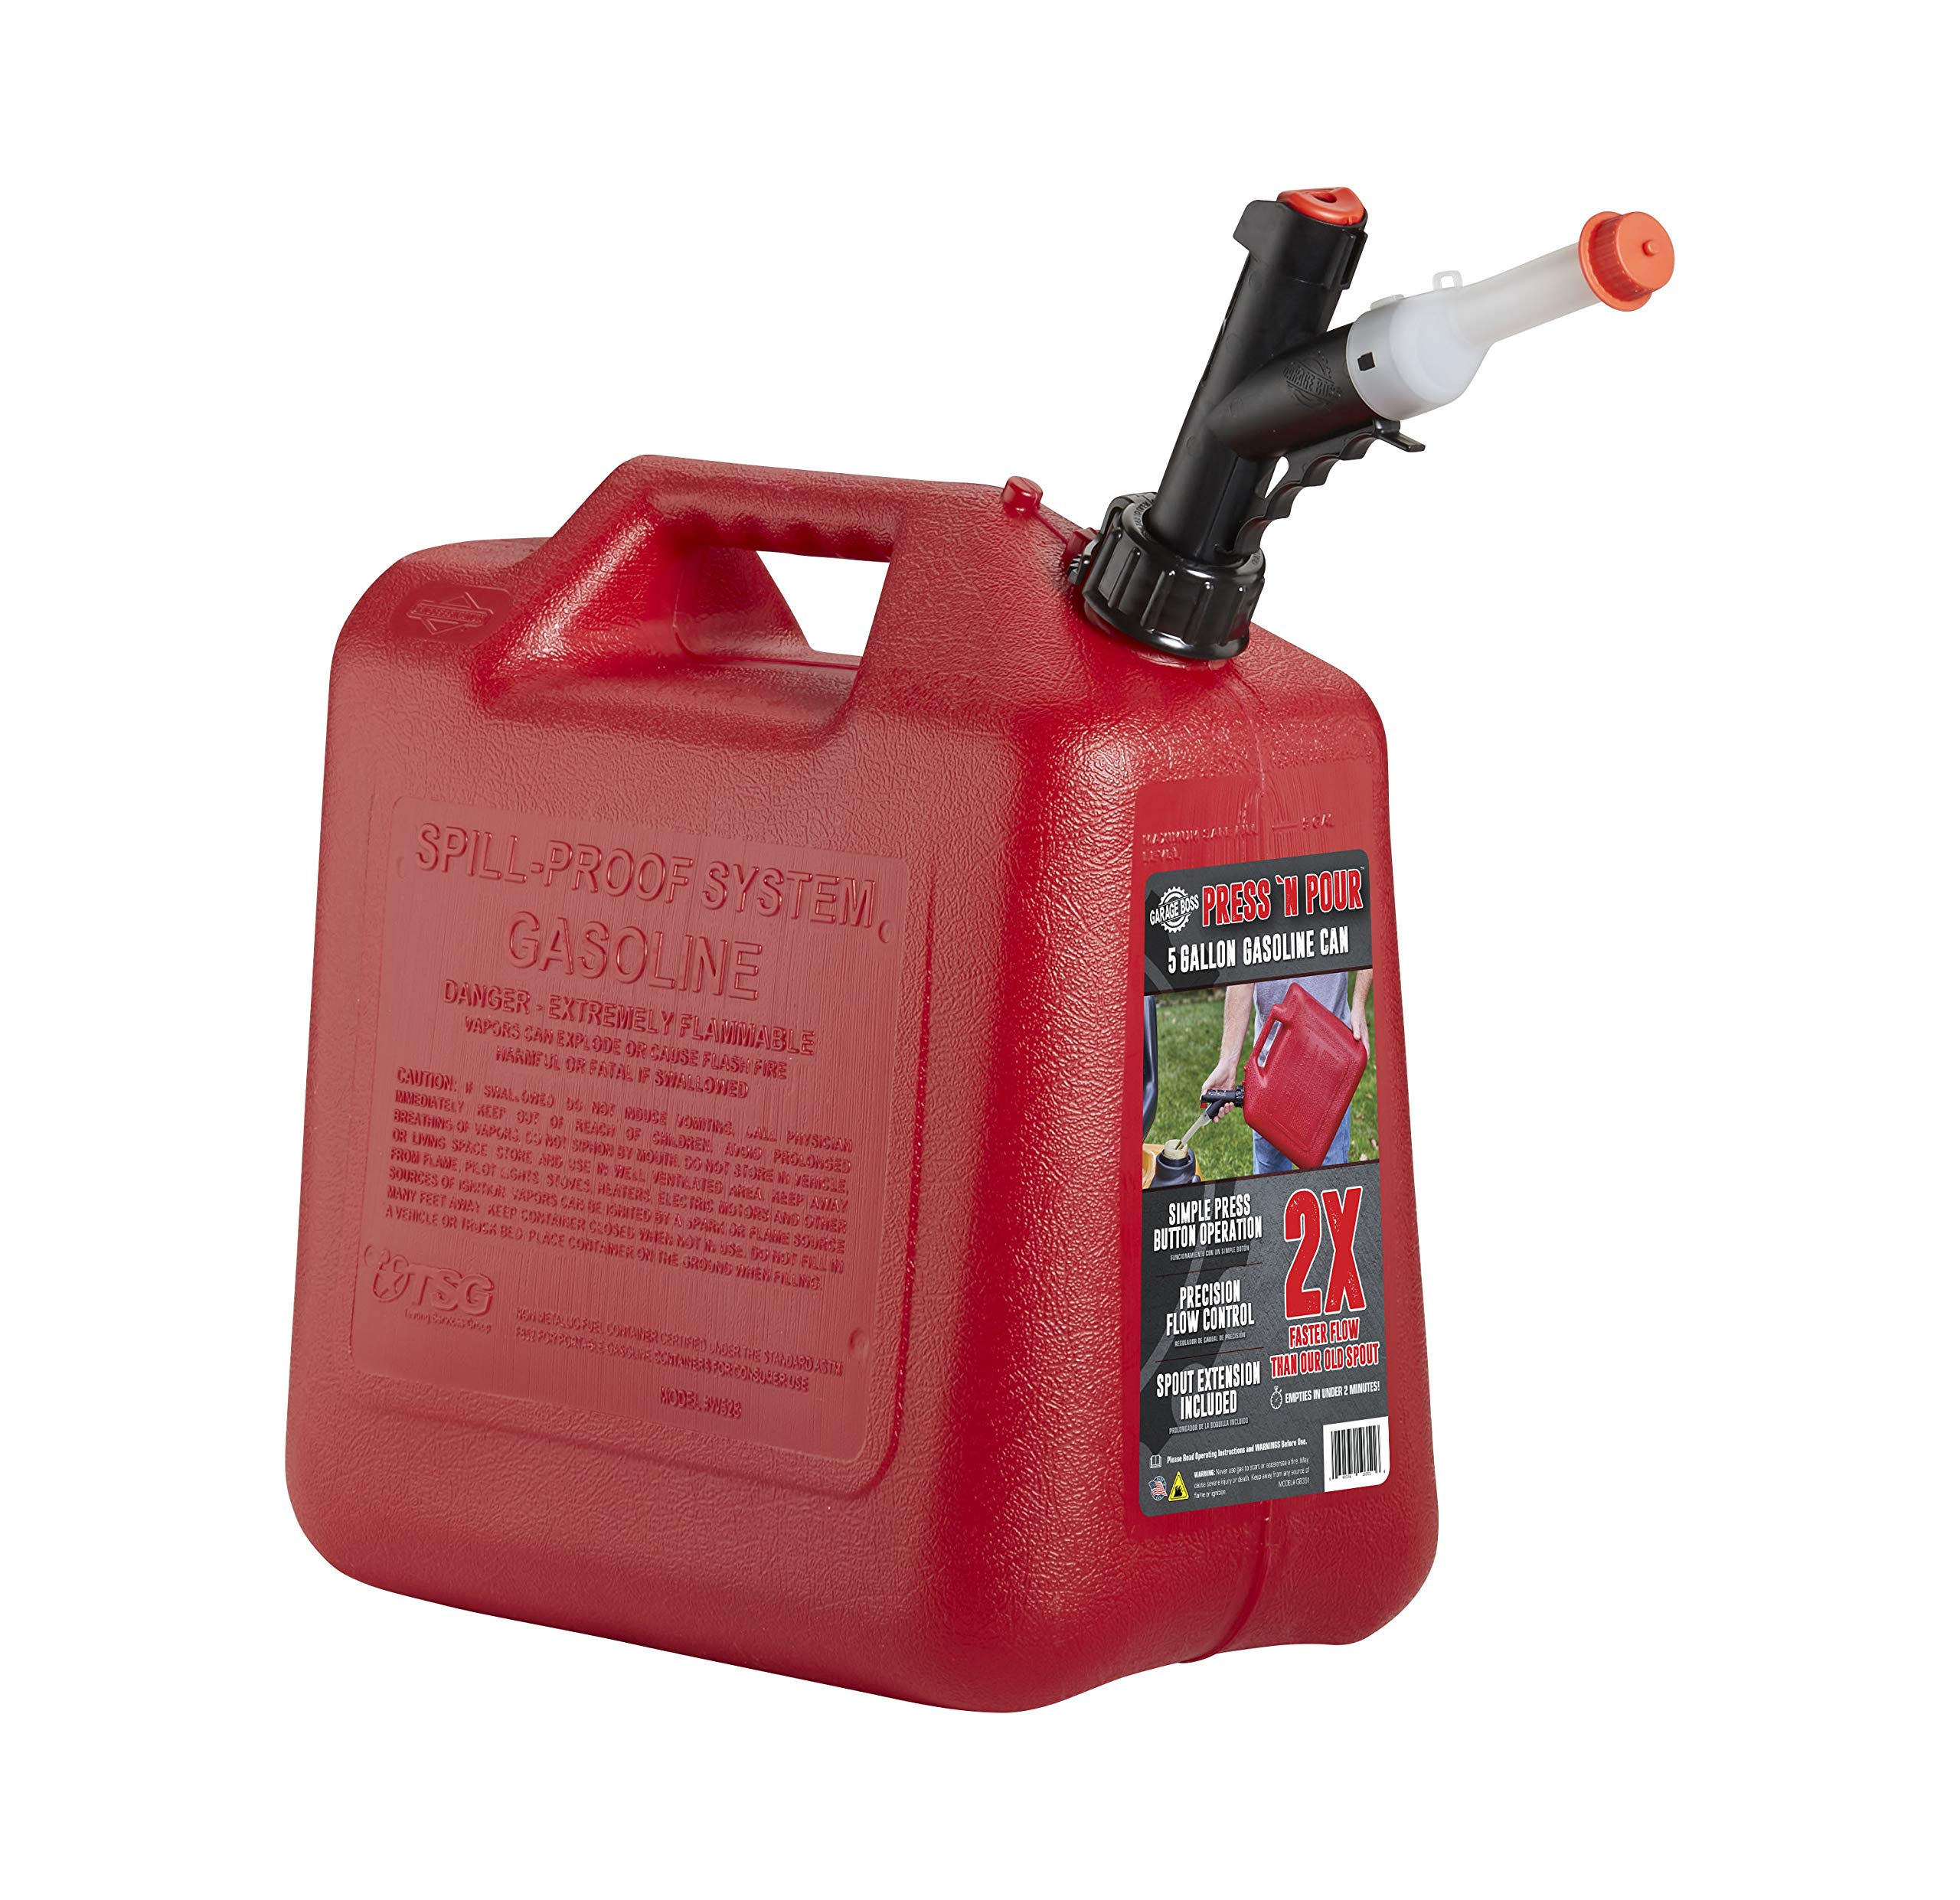 GARAGE BOSS GB351 Briggs and Stratton Press 'N Pour Gas Can, 5 Gallon, Red by GARAGE BOSS